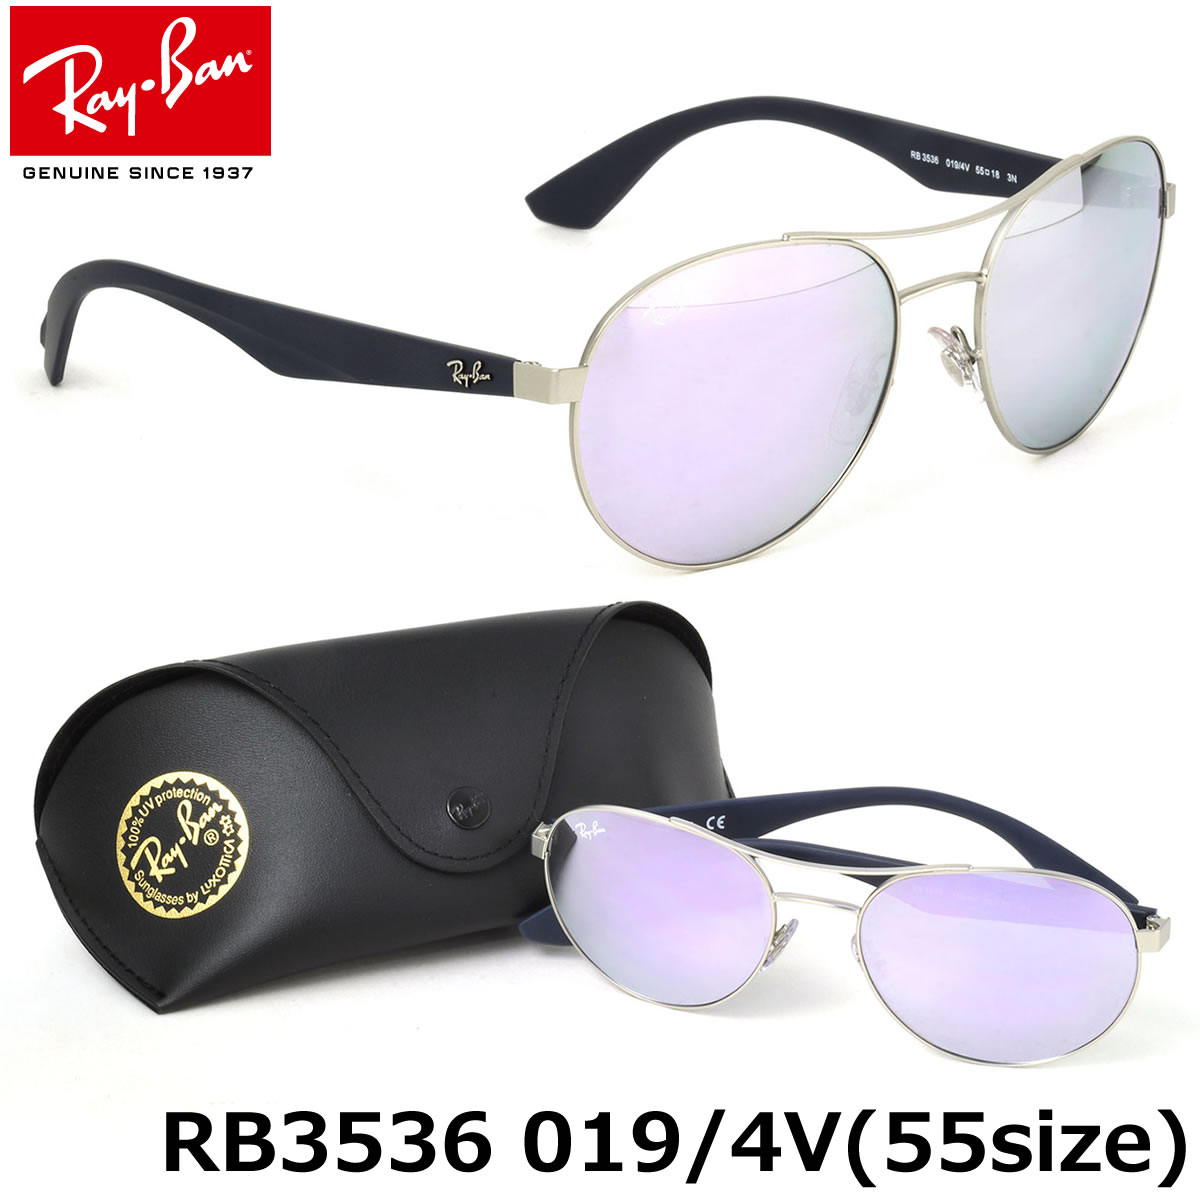 2c422399cc5 Nines is the round glasses near Boston sheep. Has become fashion-conscious  modern sunglasses. Design and thick engraved Temple is the ...